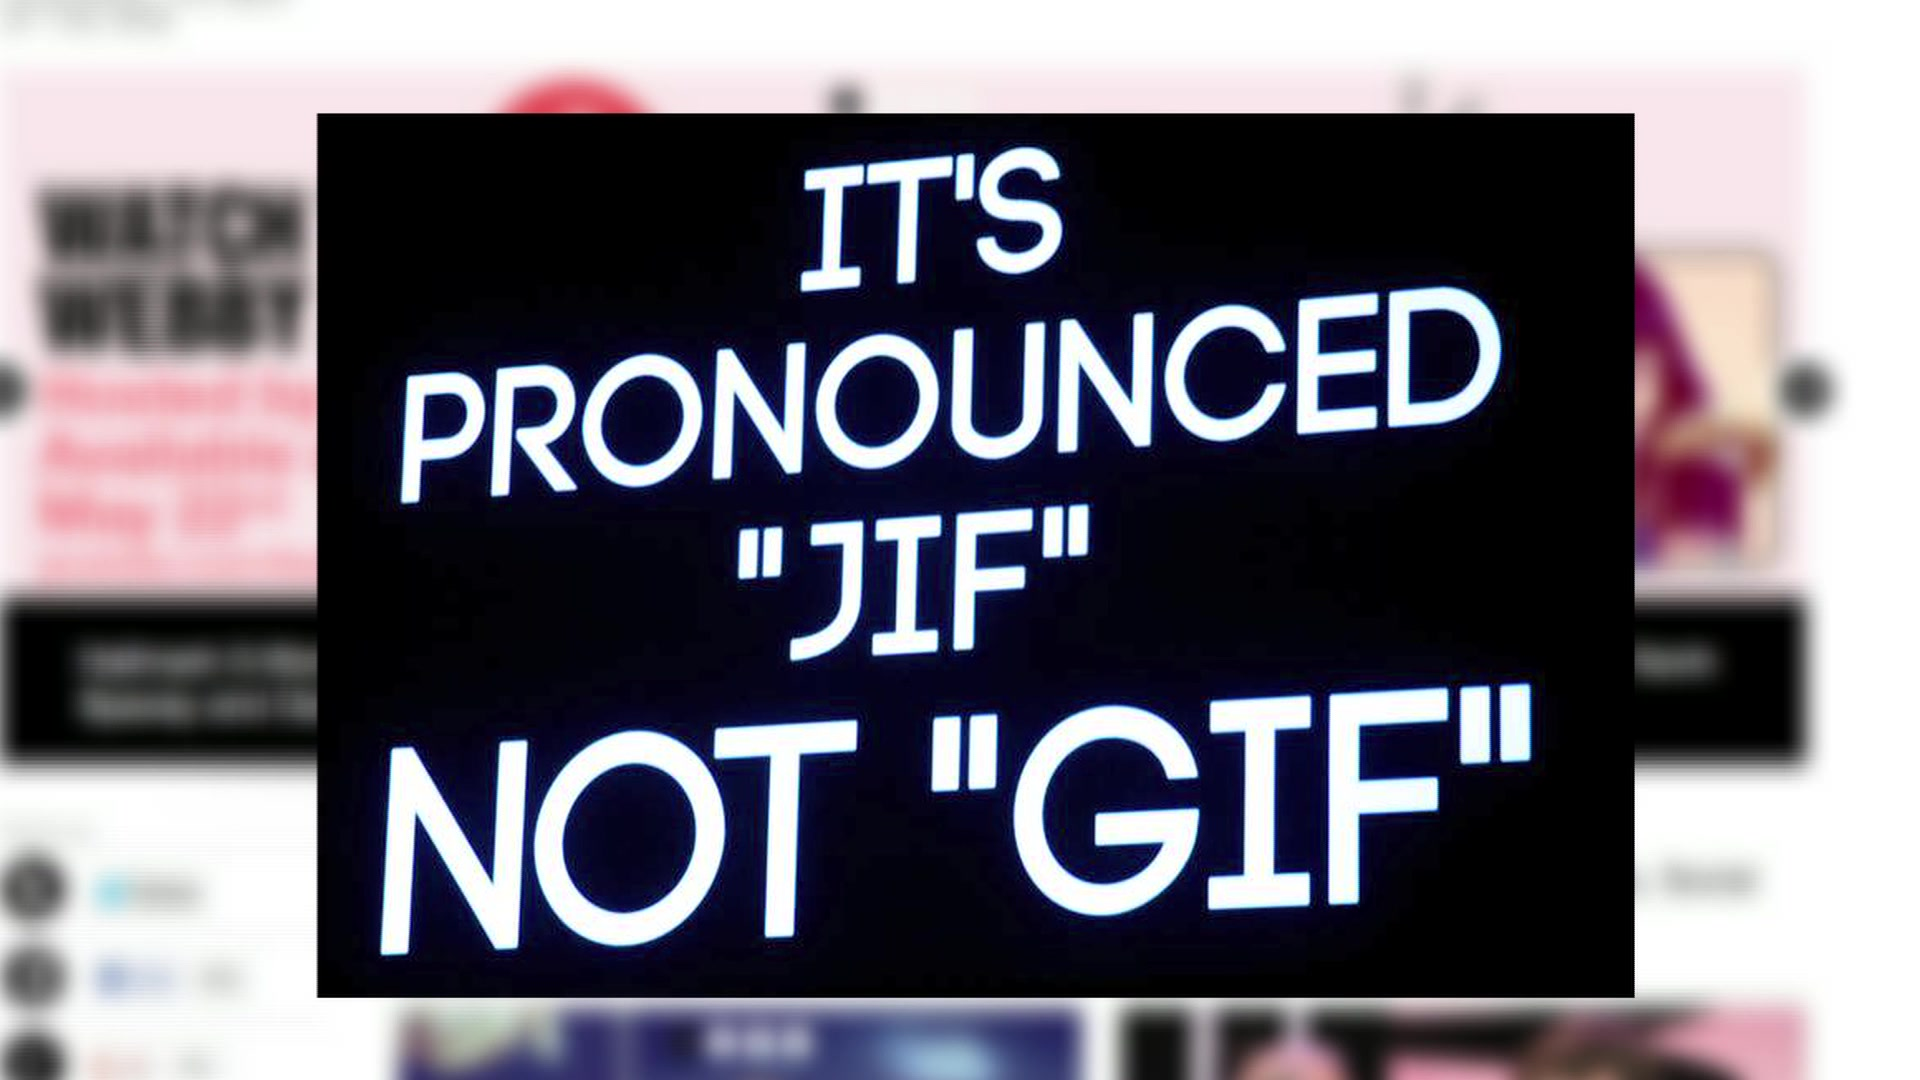 Jif or Gif? Founder of .Gif Officially Declares How It's Pronounced